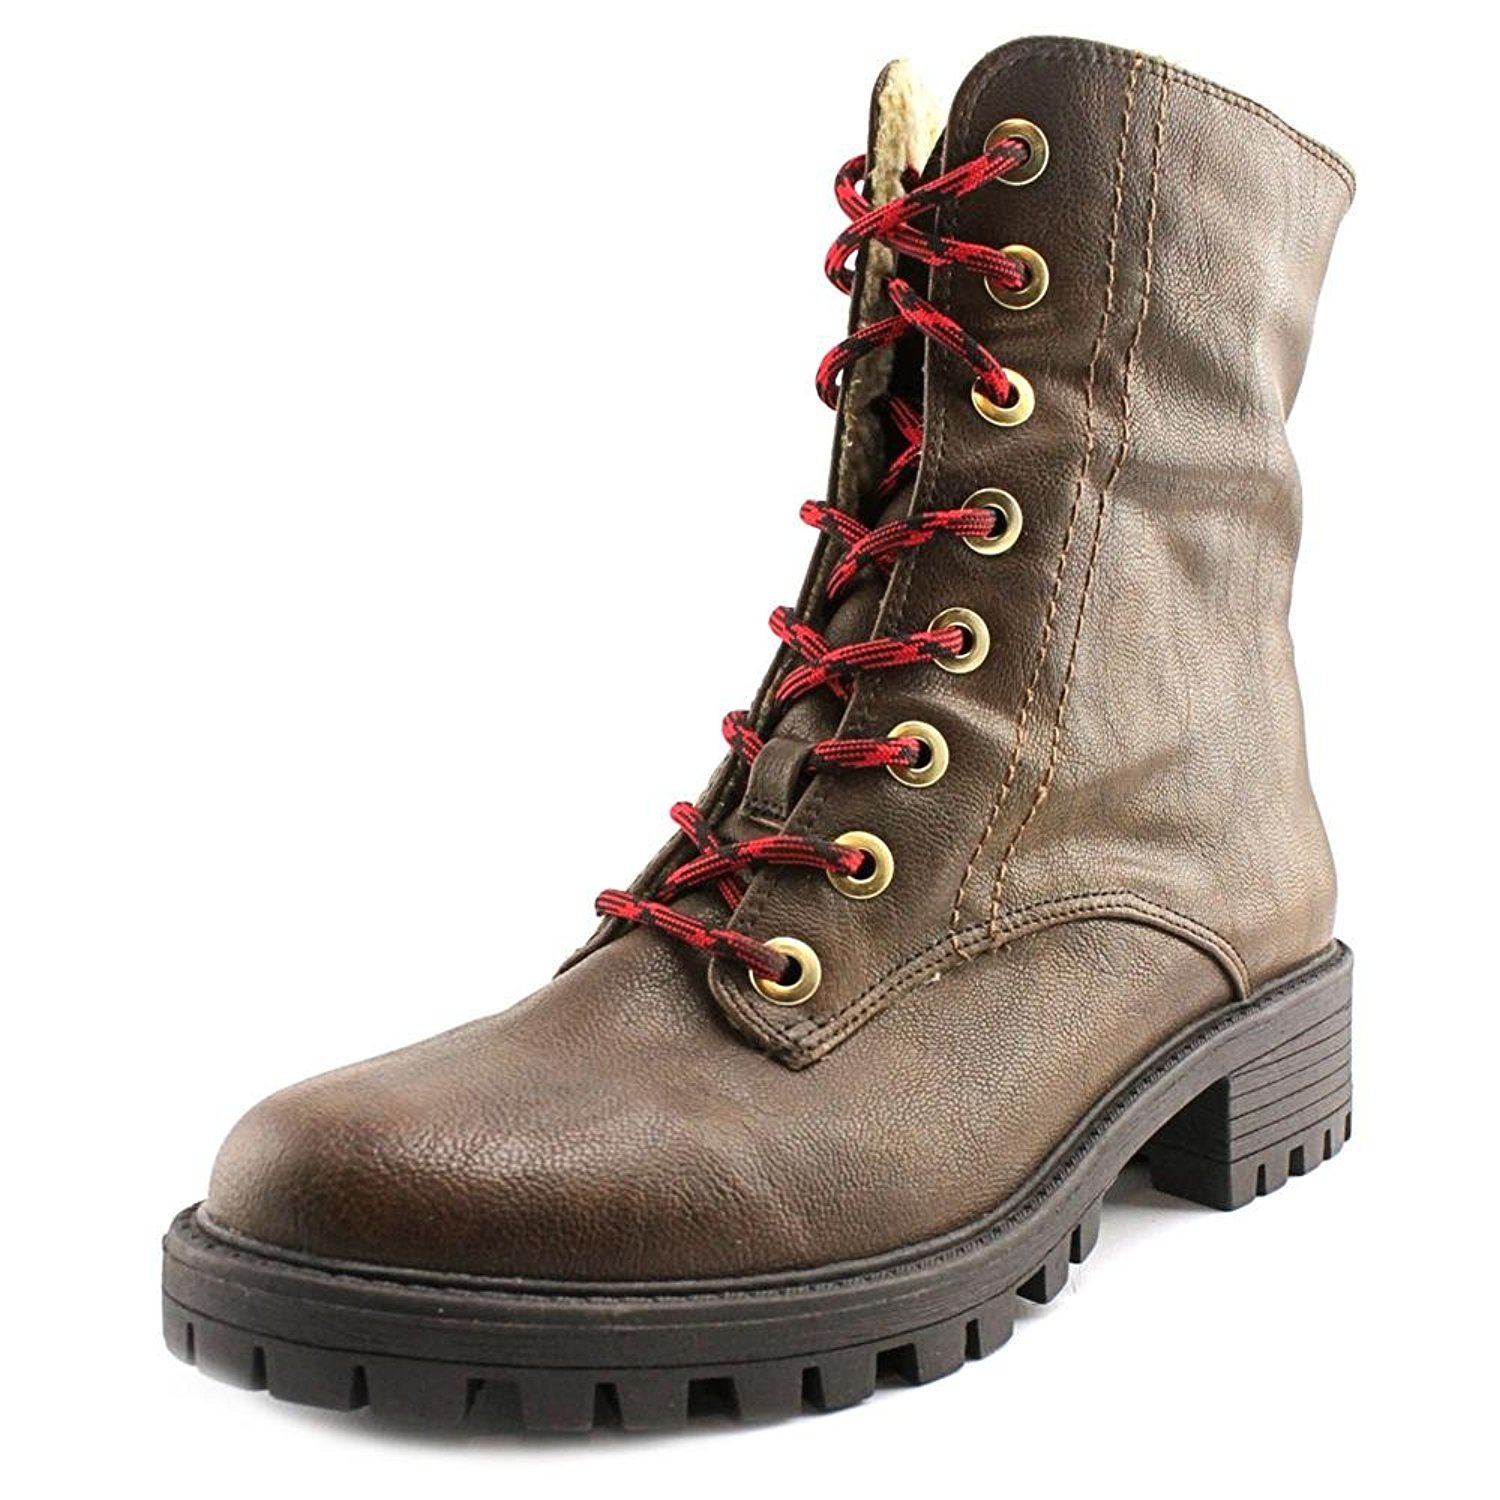 Bar III Womens Blue Brown Closed Toe Ankle Combat Boots